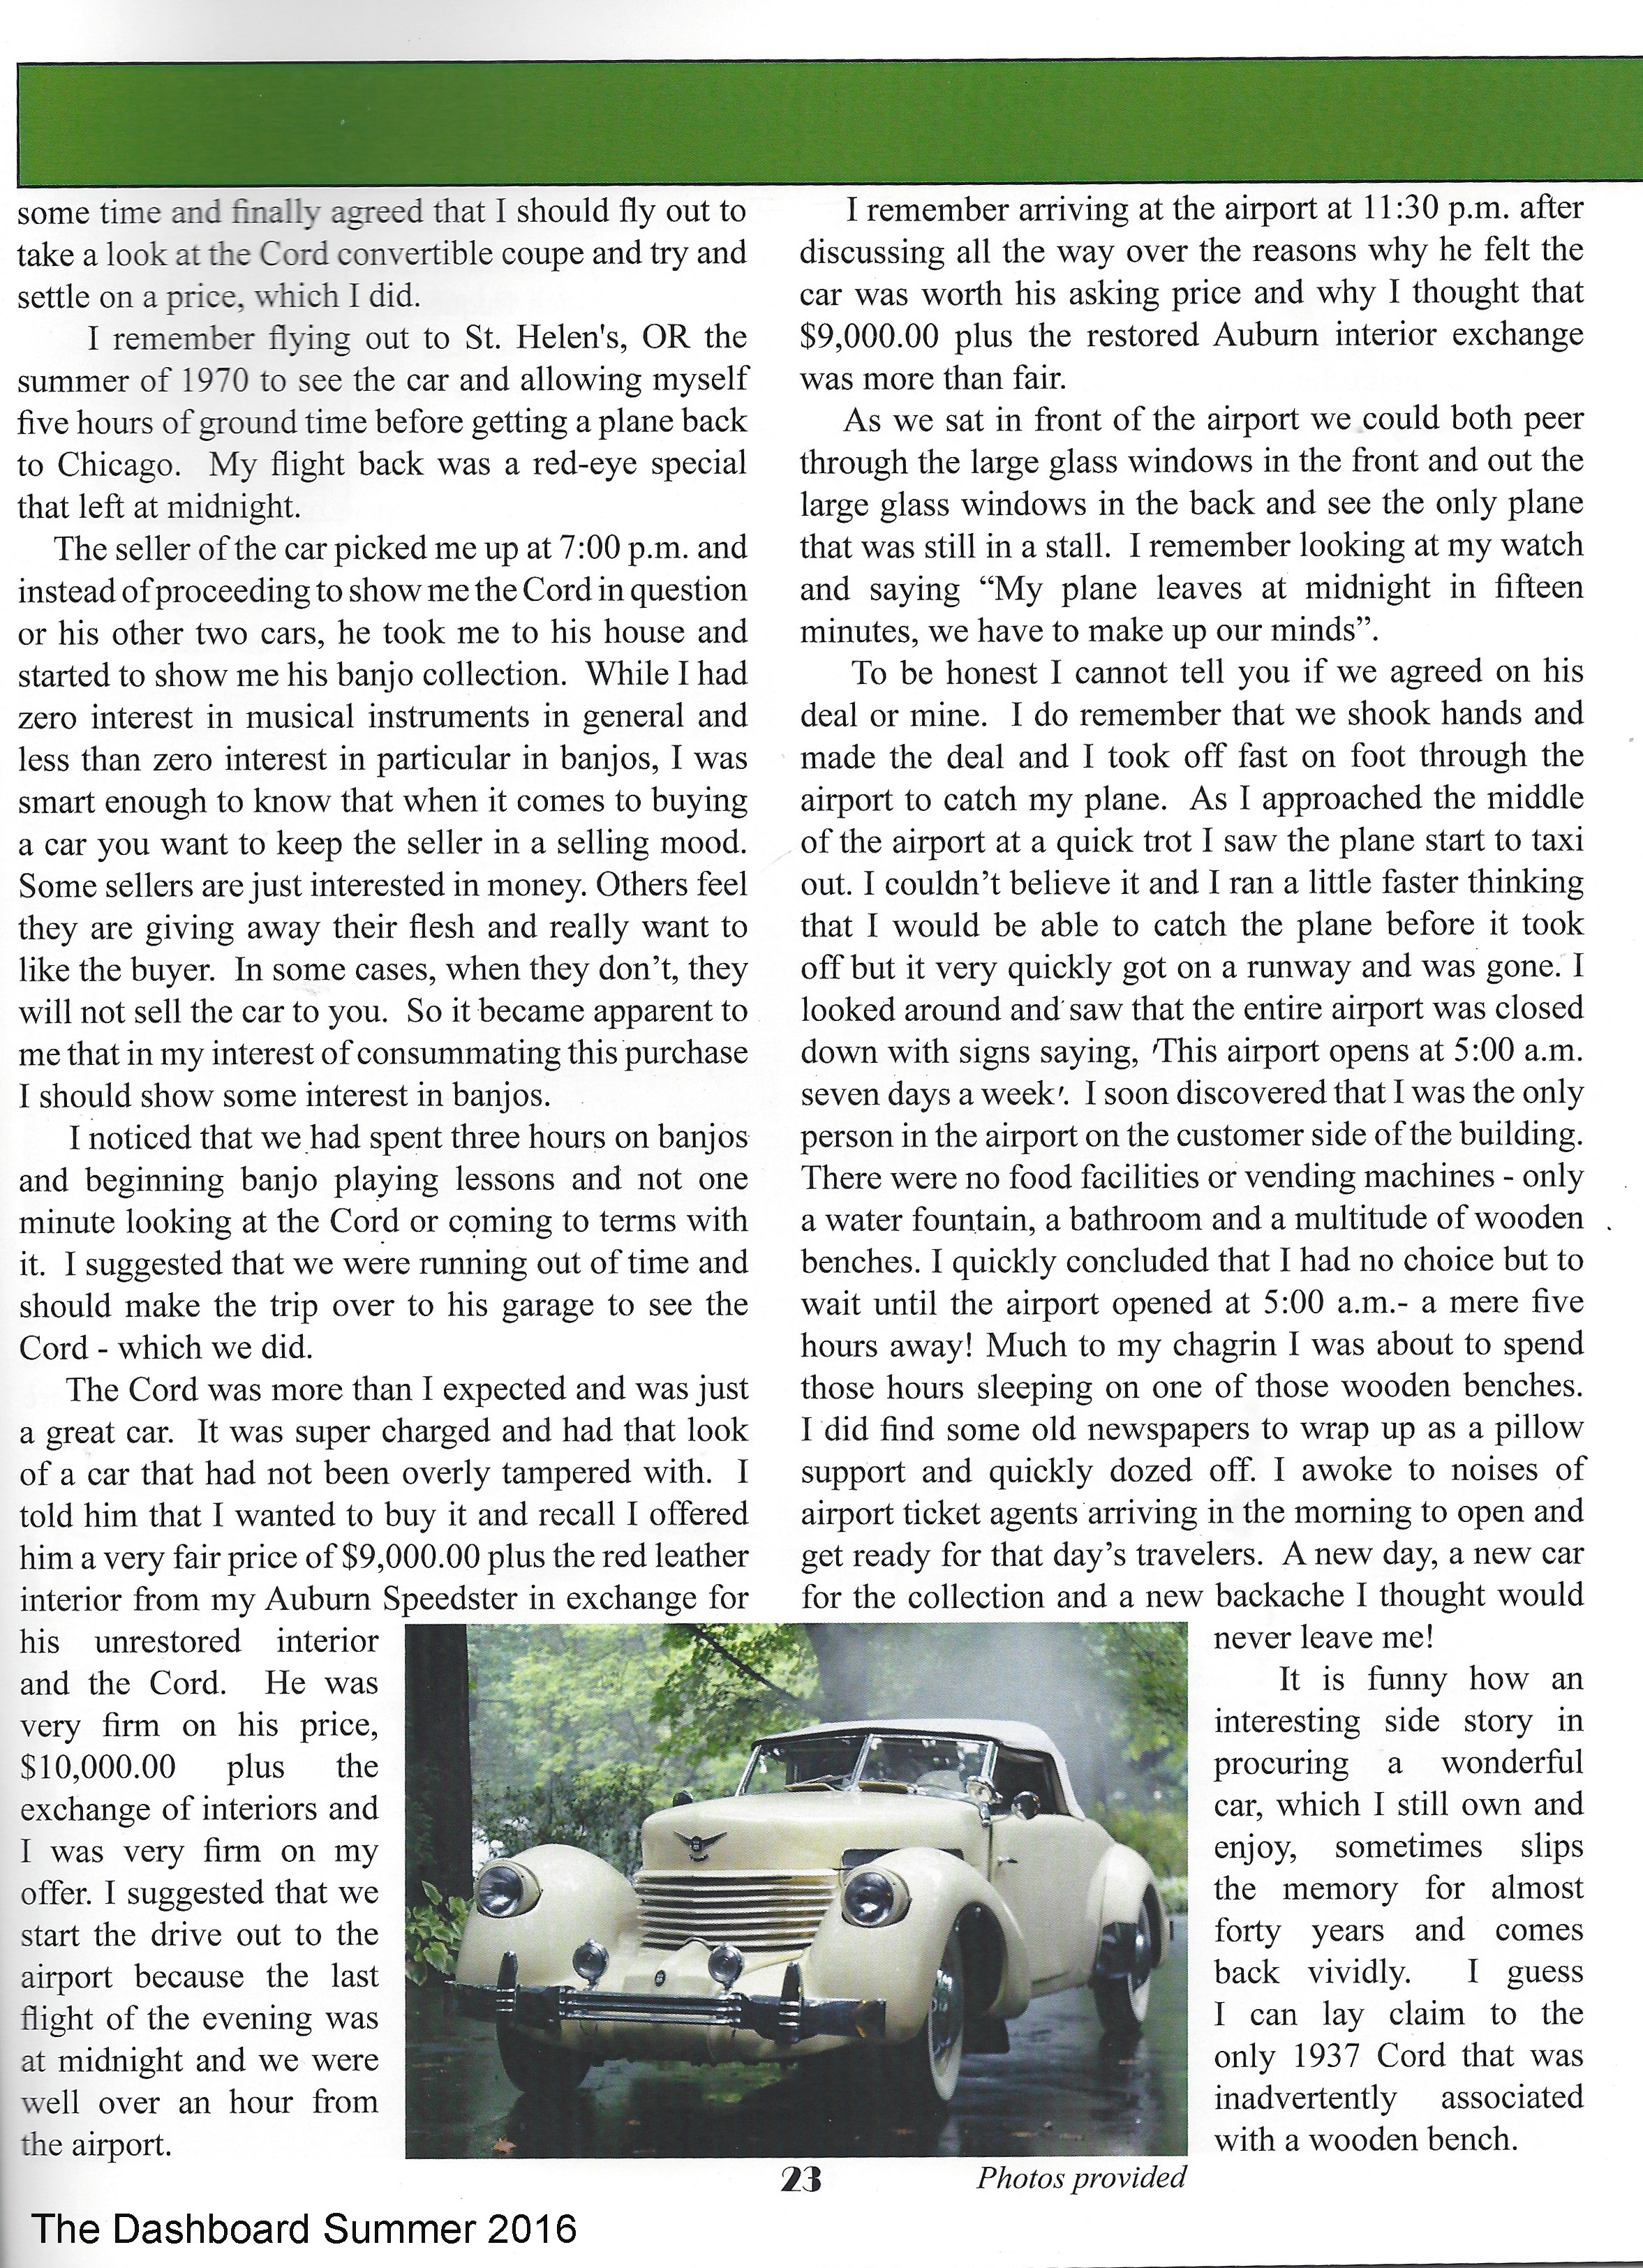 1937 cord article by Joe Bortz